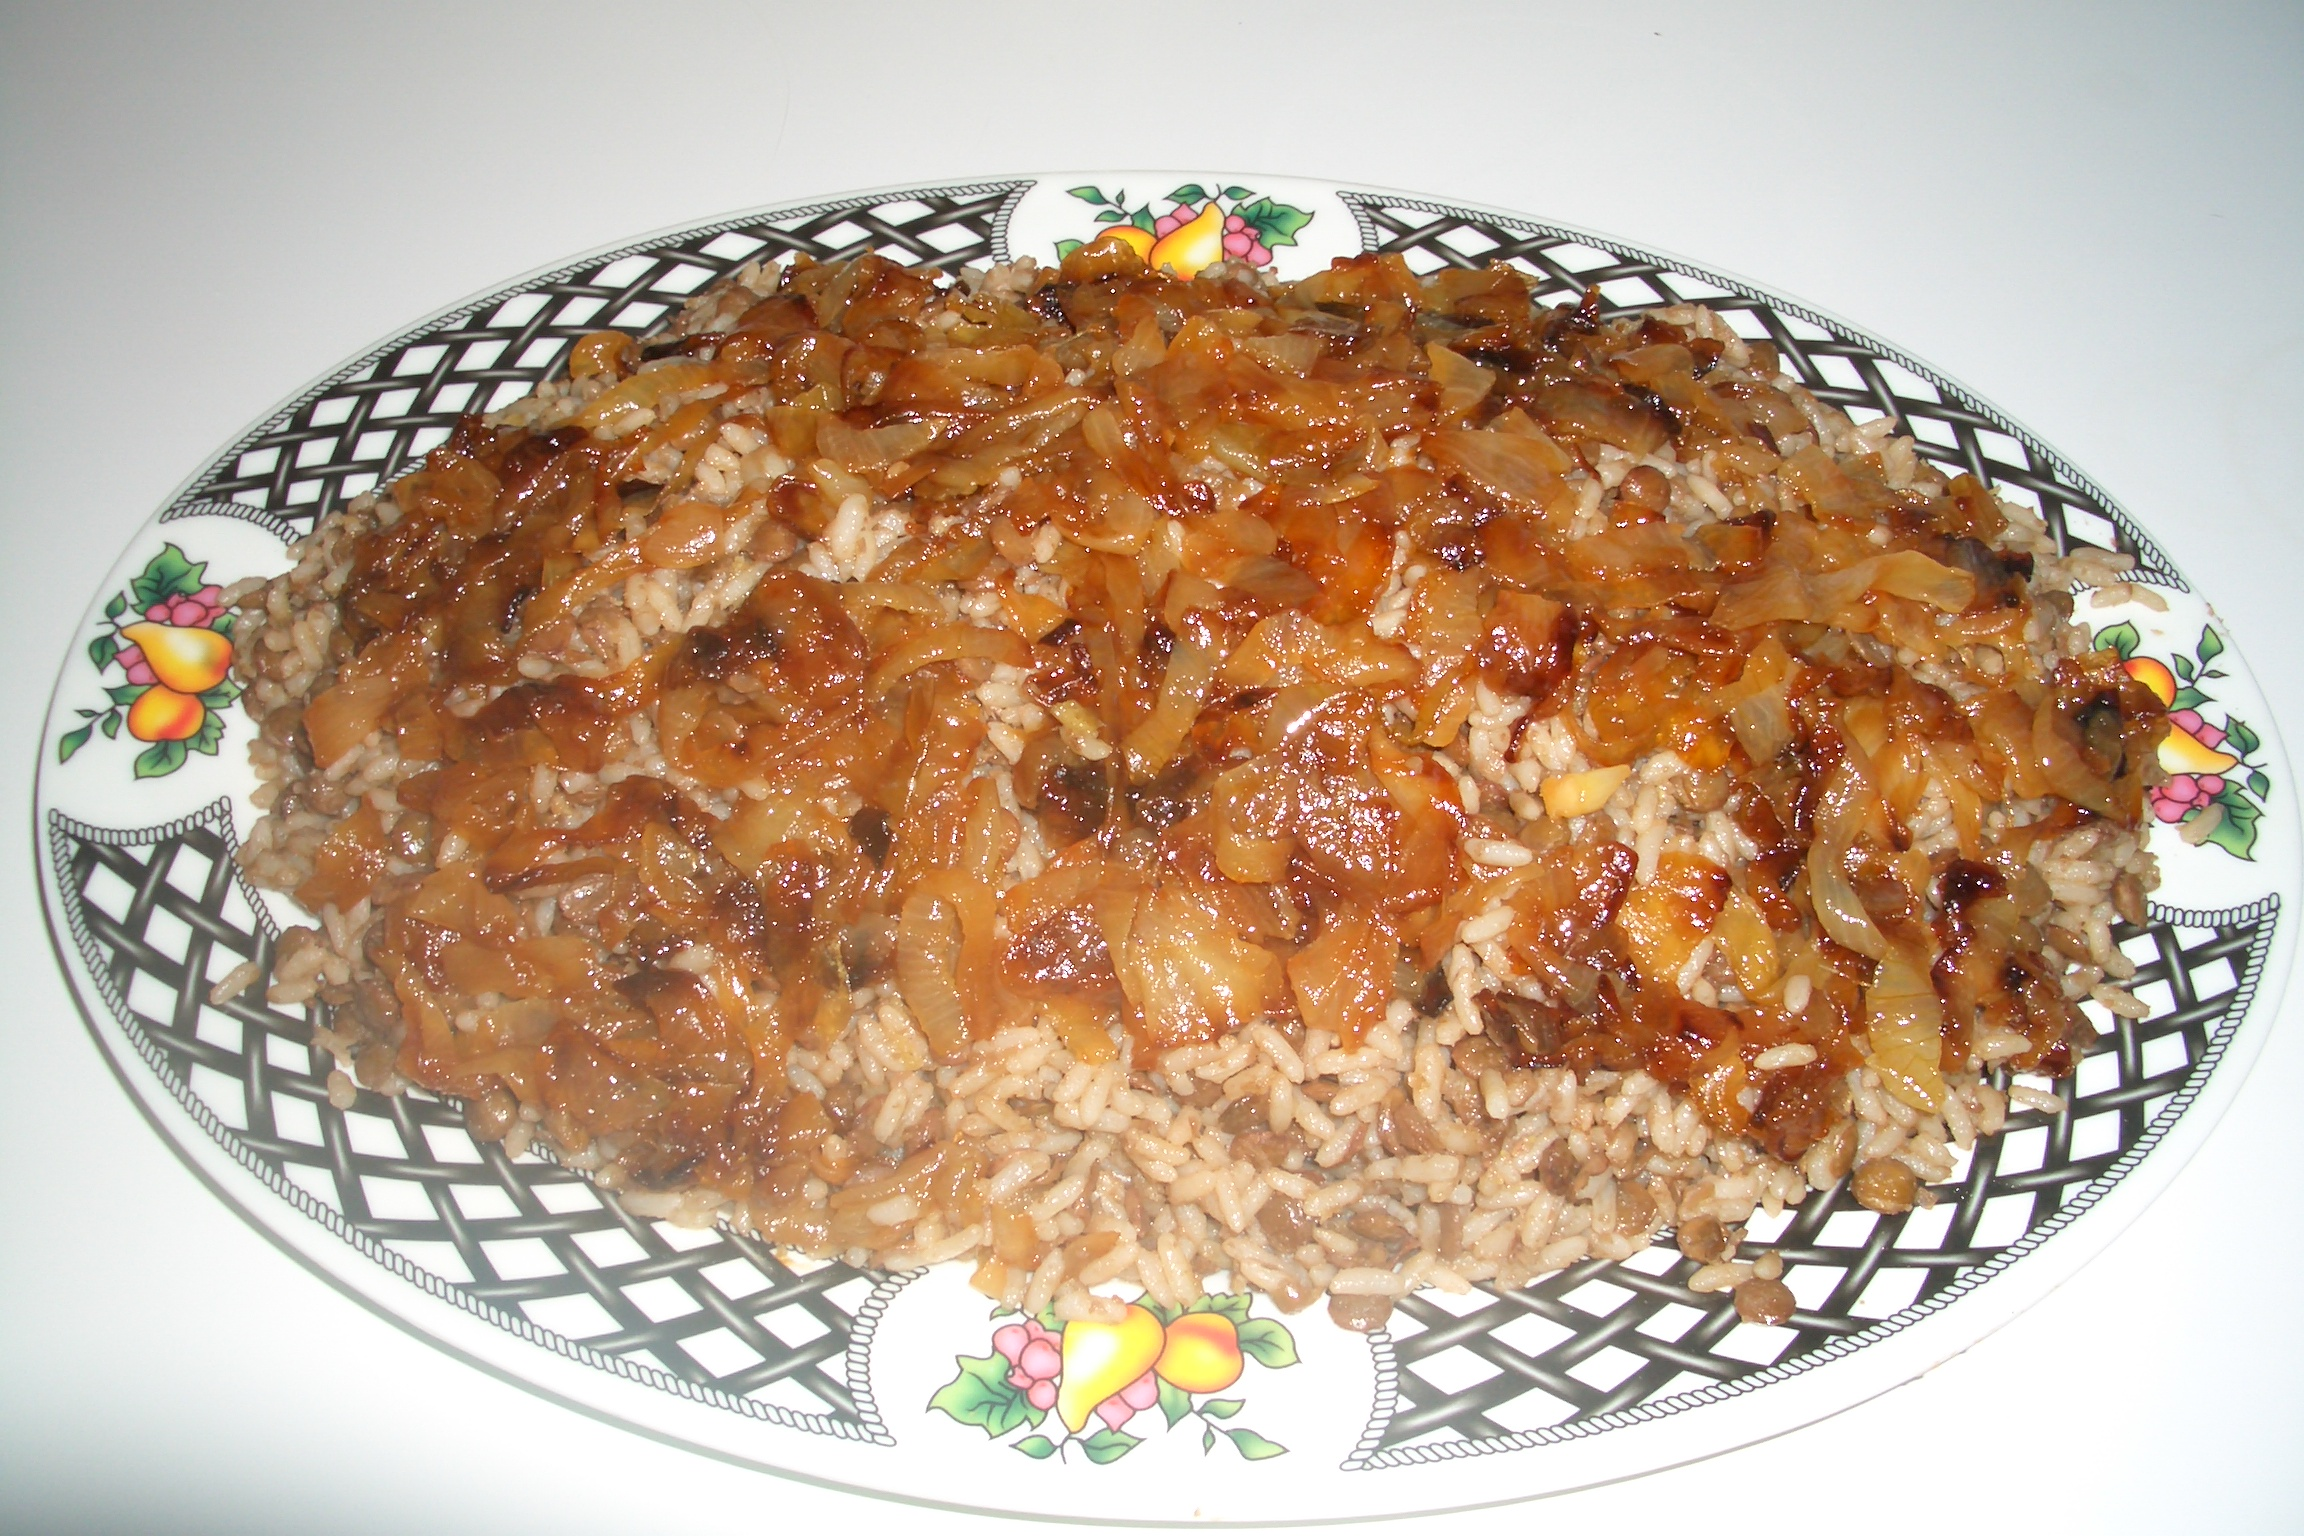 Mjeddrah is a common, yet, an extremely nutritious dish from the Lebanese cuisine.